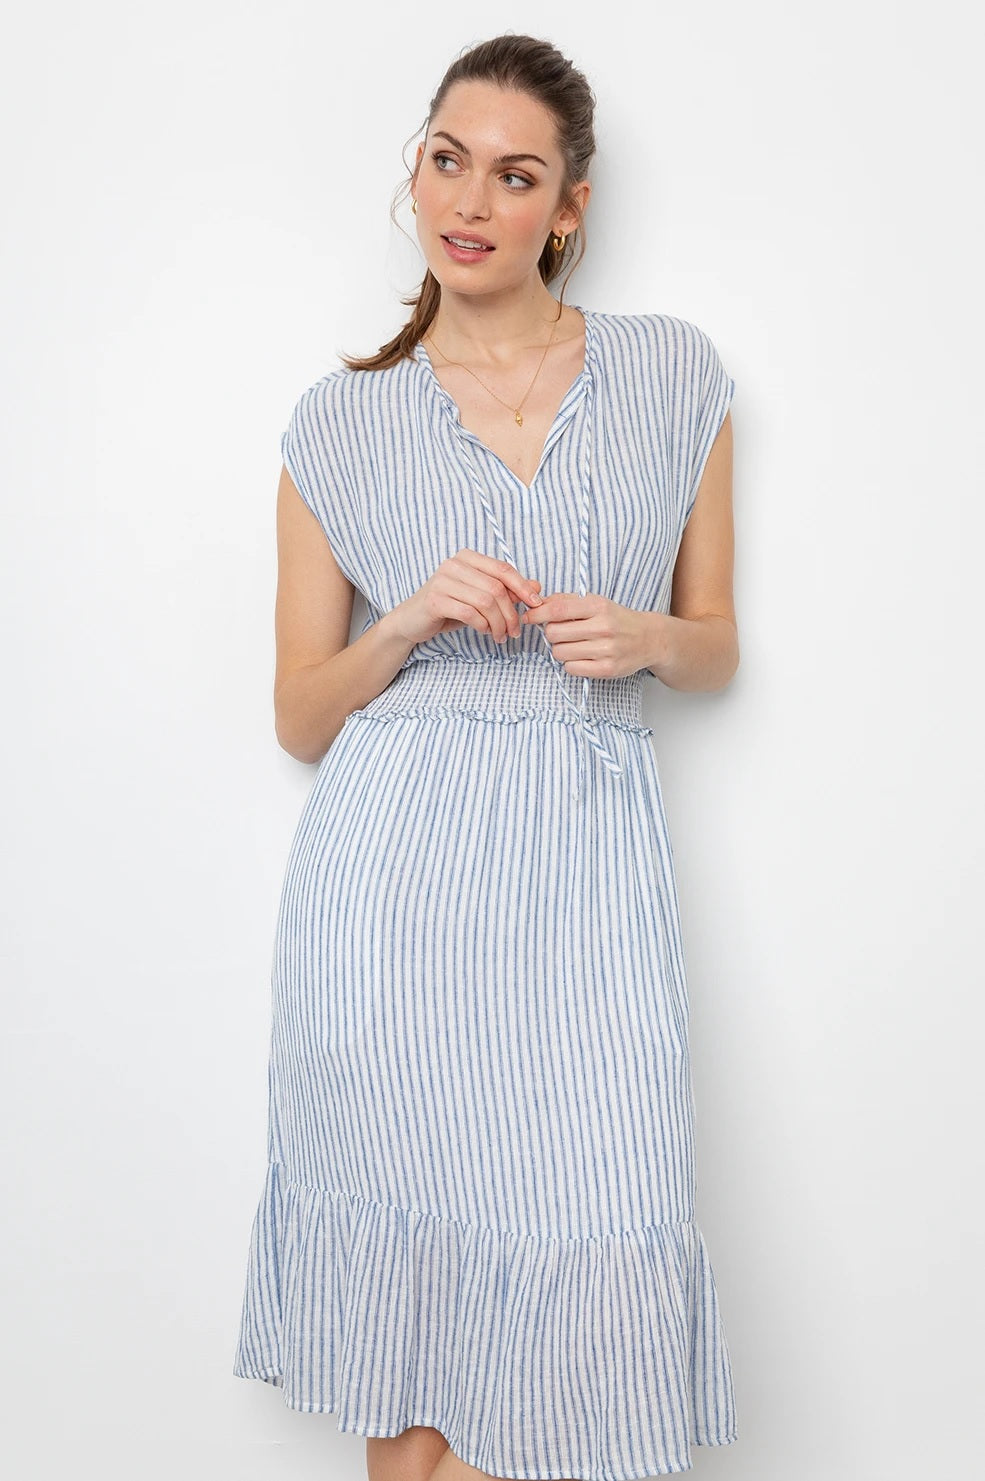 RAILS CLOTHING - Ashlyn Fremont Stripe Dress online at PAYA boutique